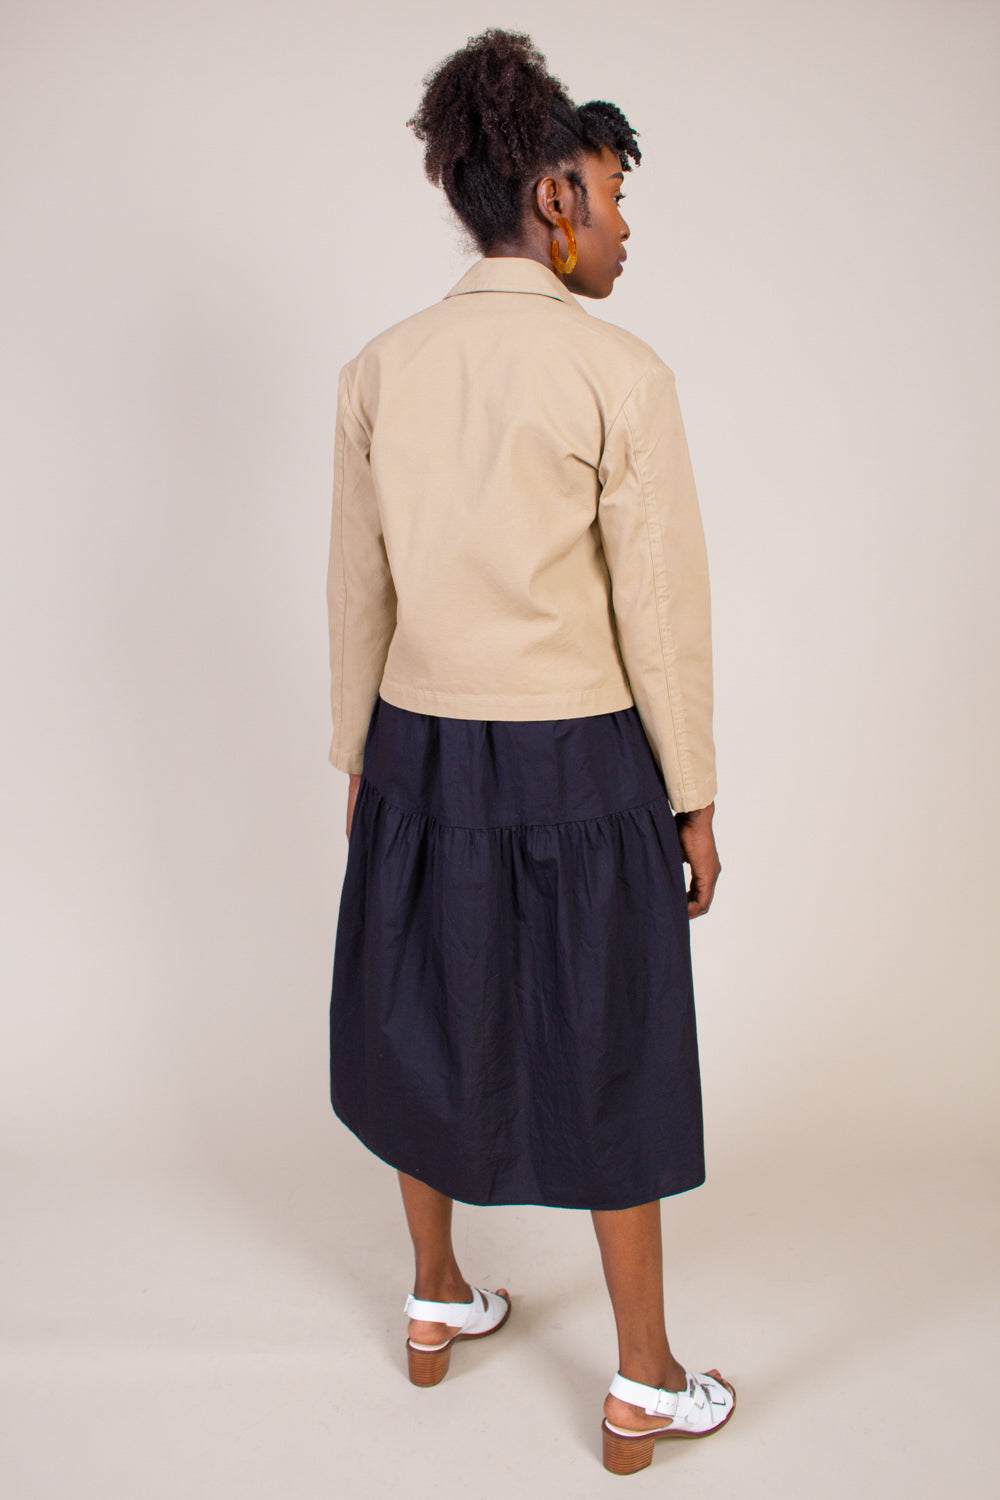 Grei Sack Pocket Ivy Jacket in Khaki - Vert & Vogue